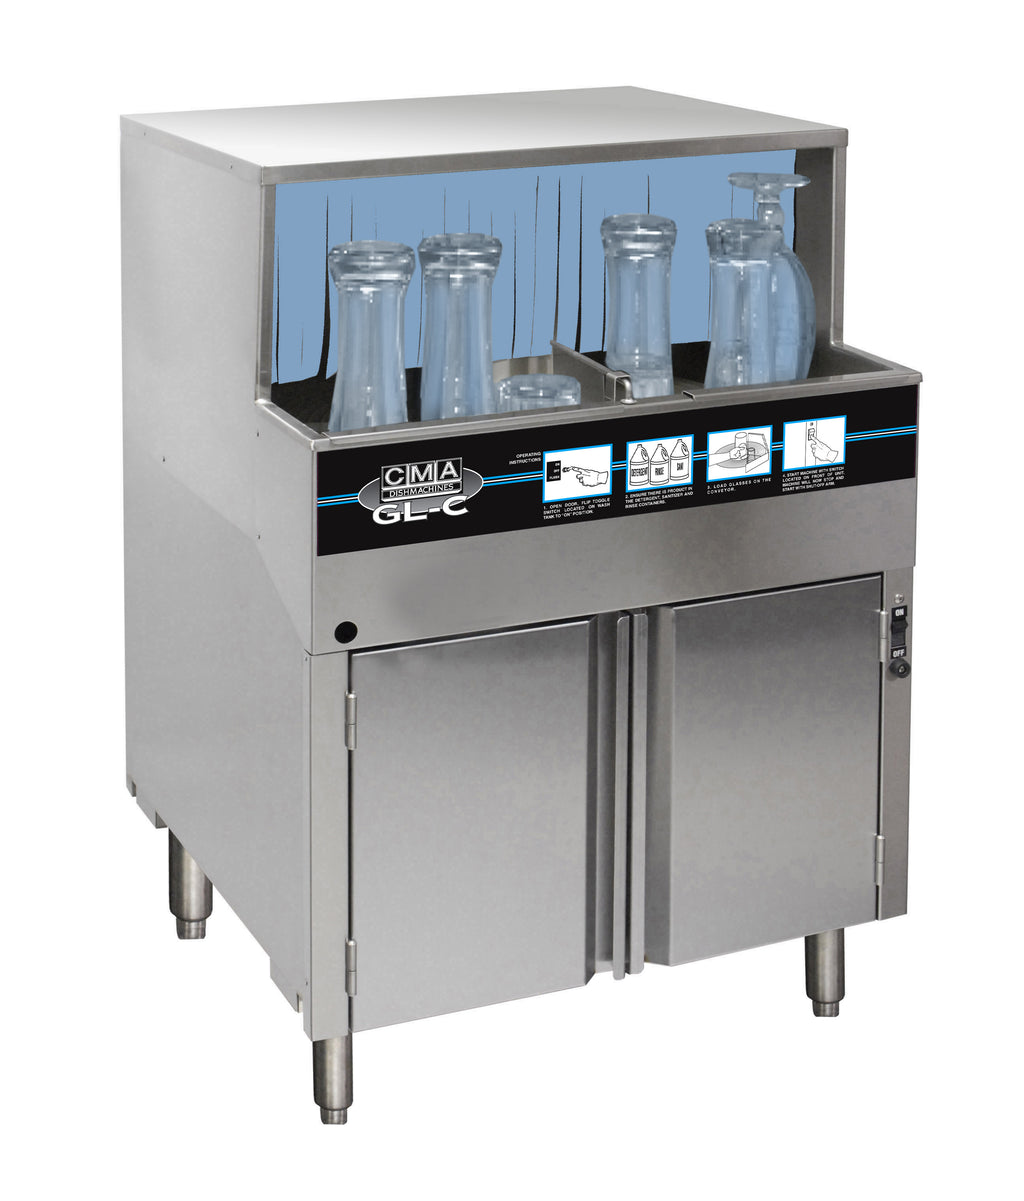 CMA GL-C Low Temp Undercounter Glasswasher FREE SHIPPING!